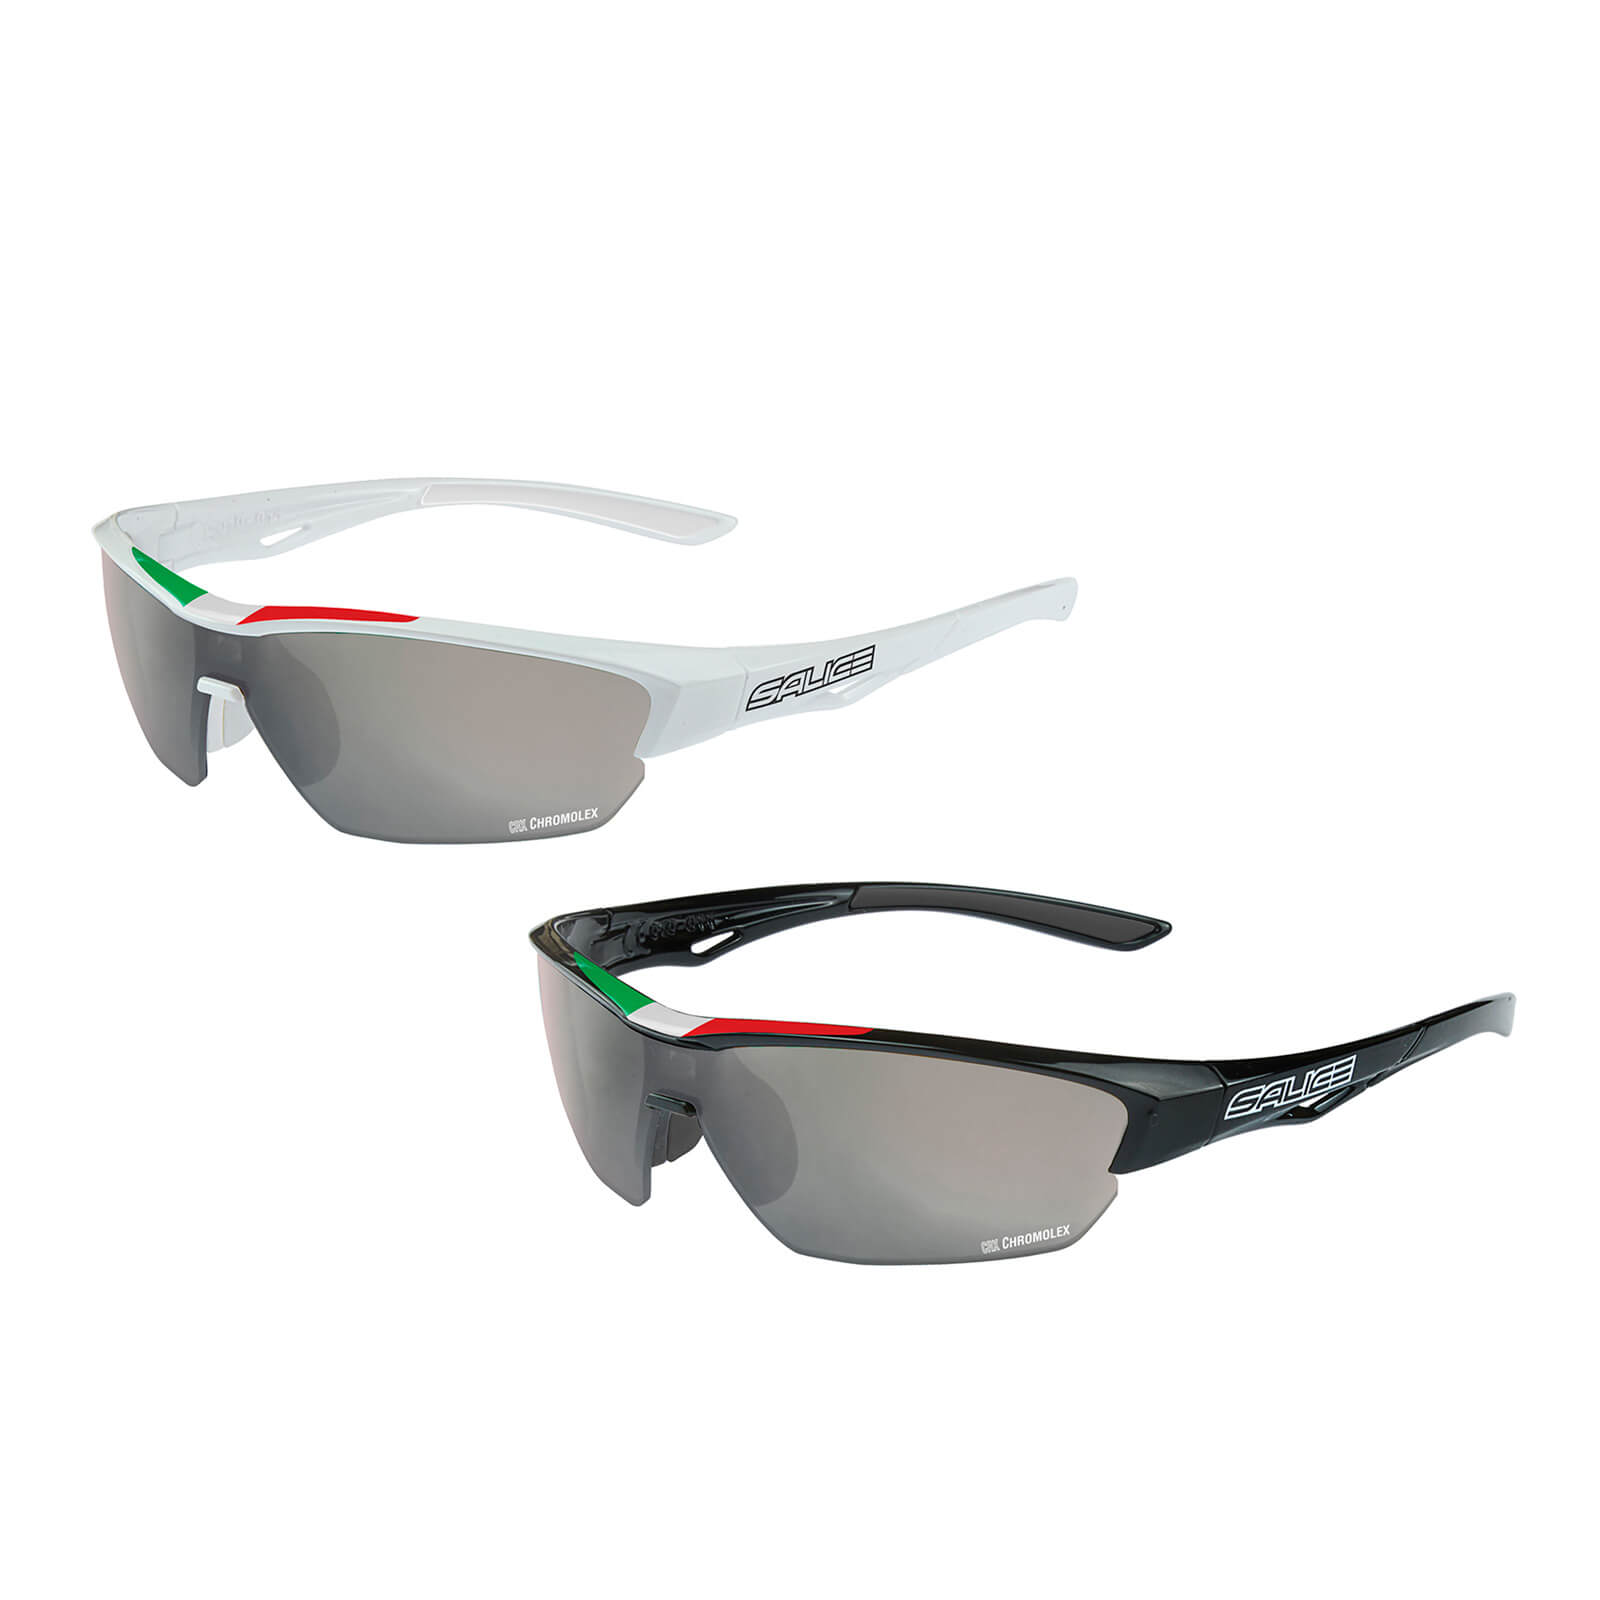 Salice 011 Italian Edition CRX Photochromic Sunglasses